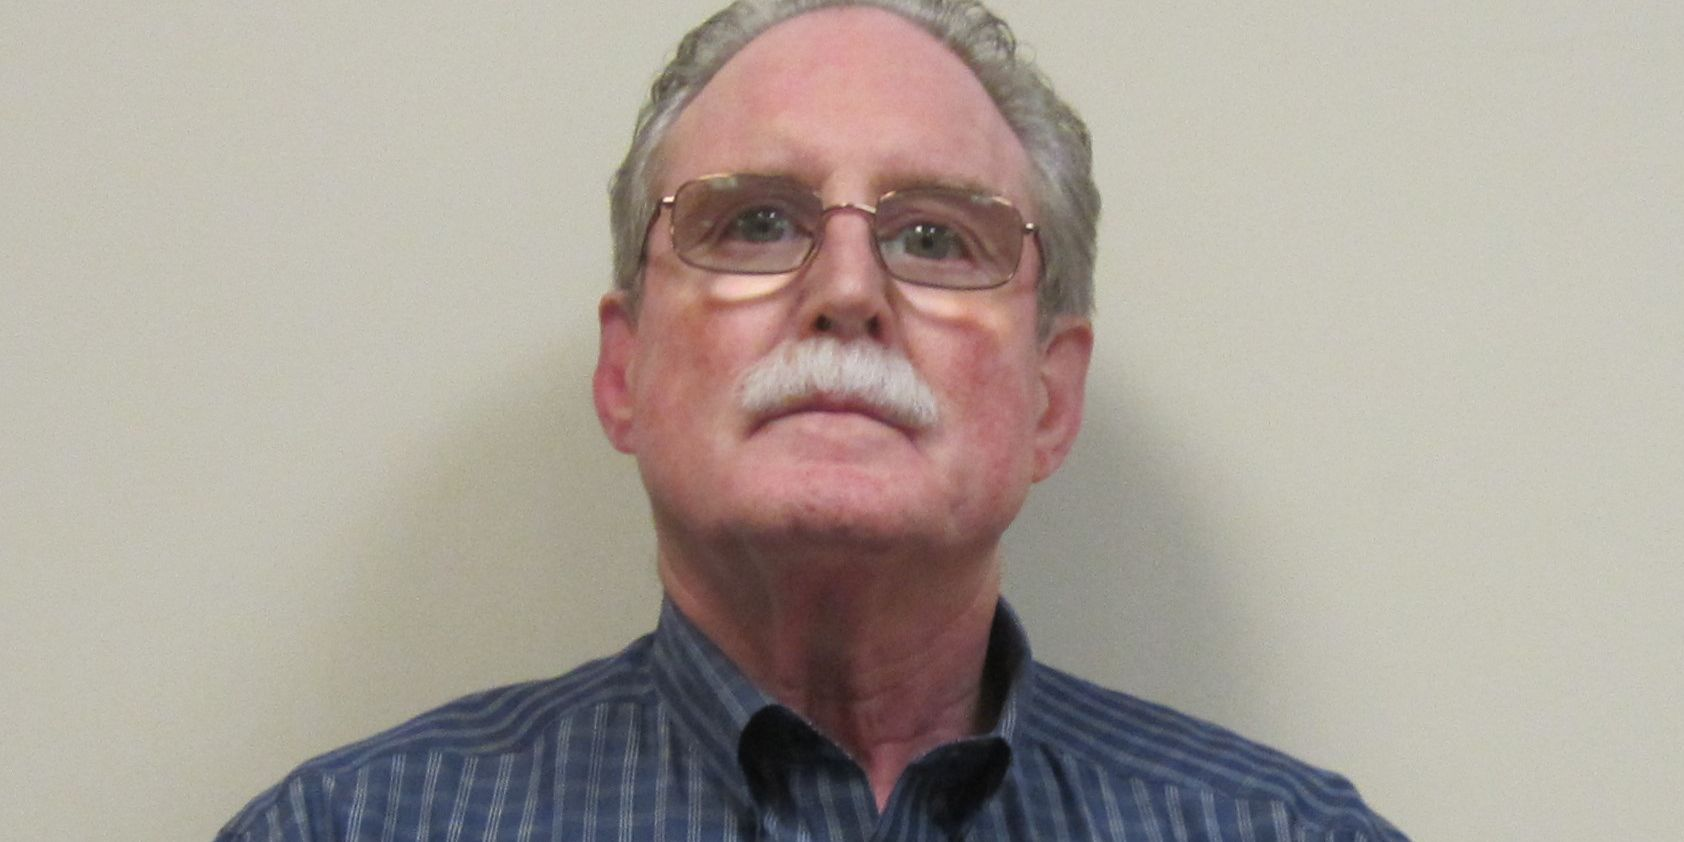 South Alabama vet charged with animal cruelty